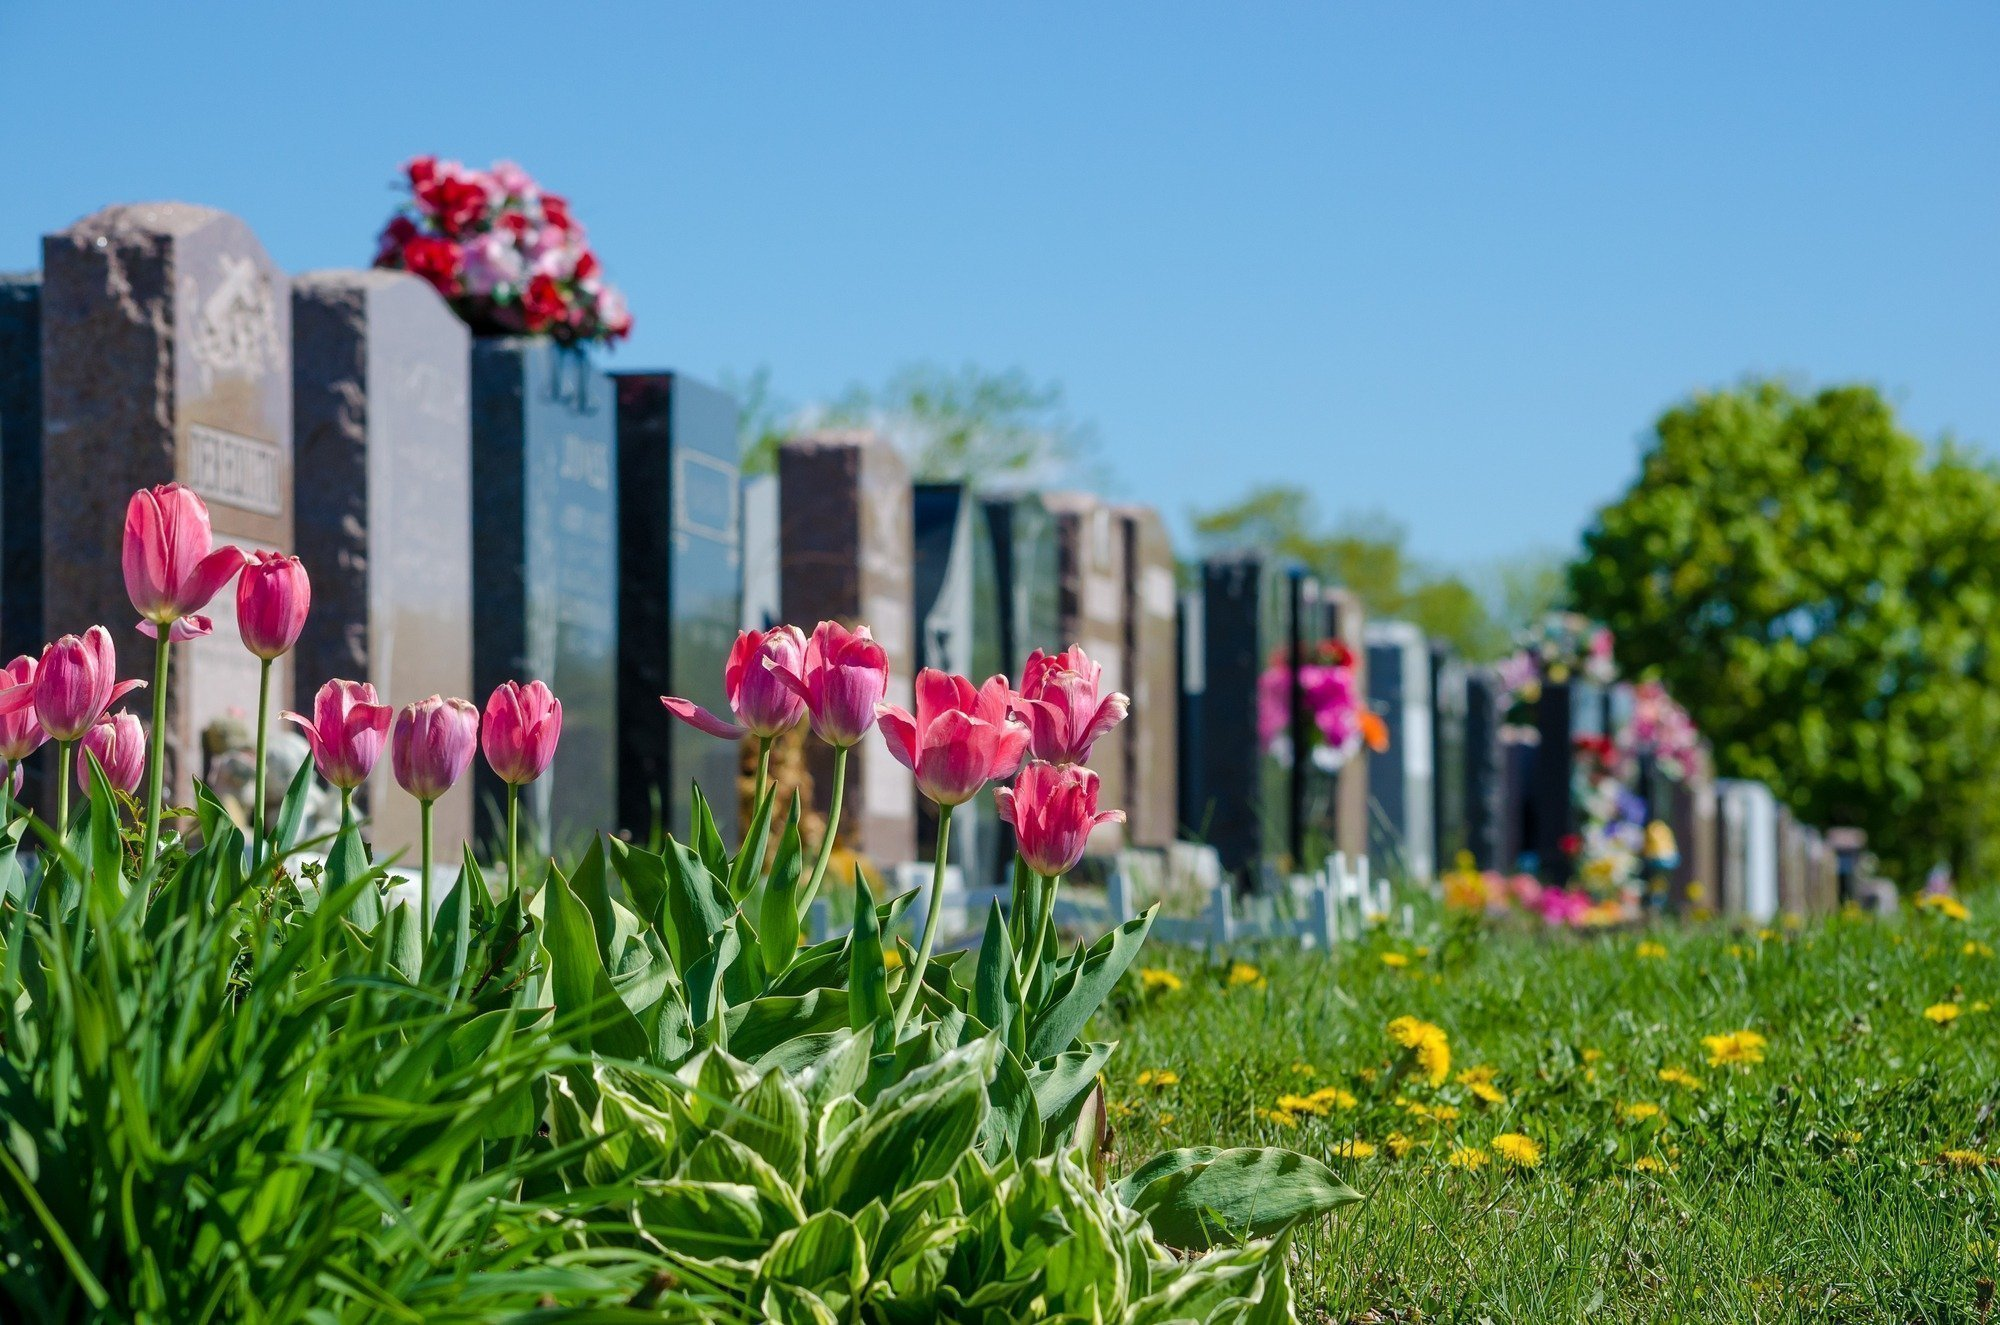 How Unpreparedness For Your Death Affects Your Family